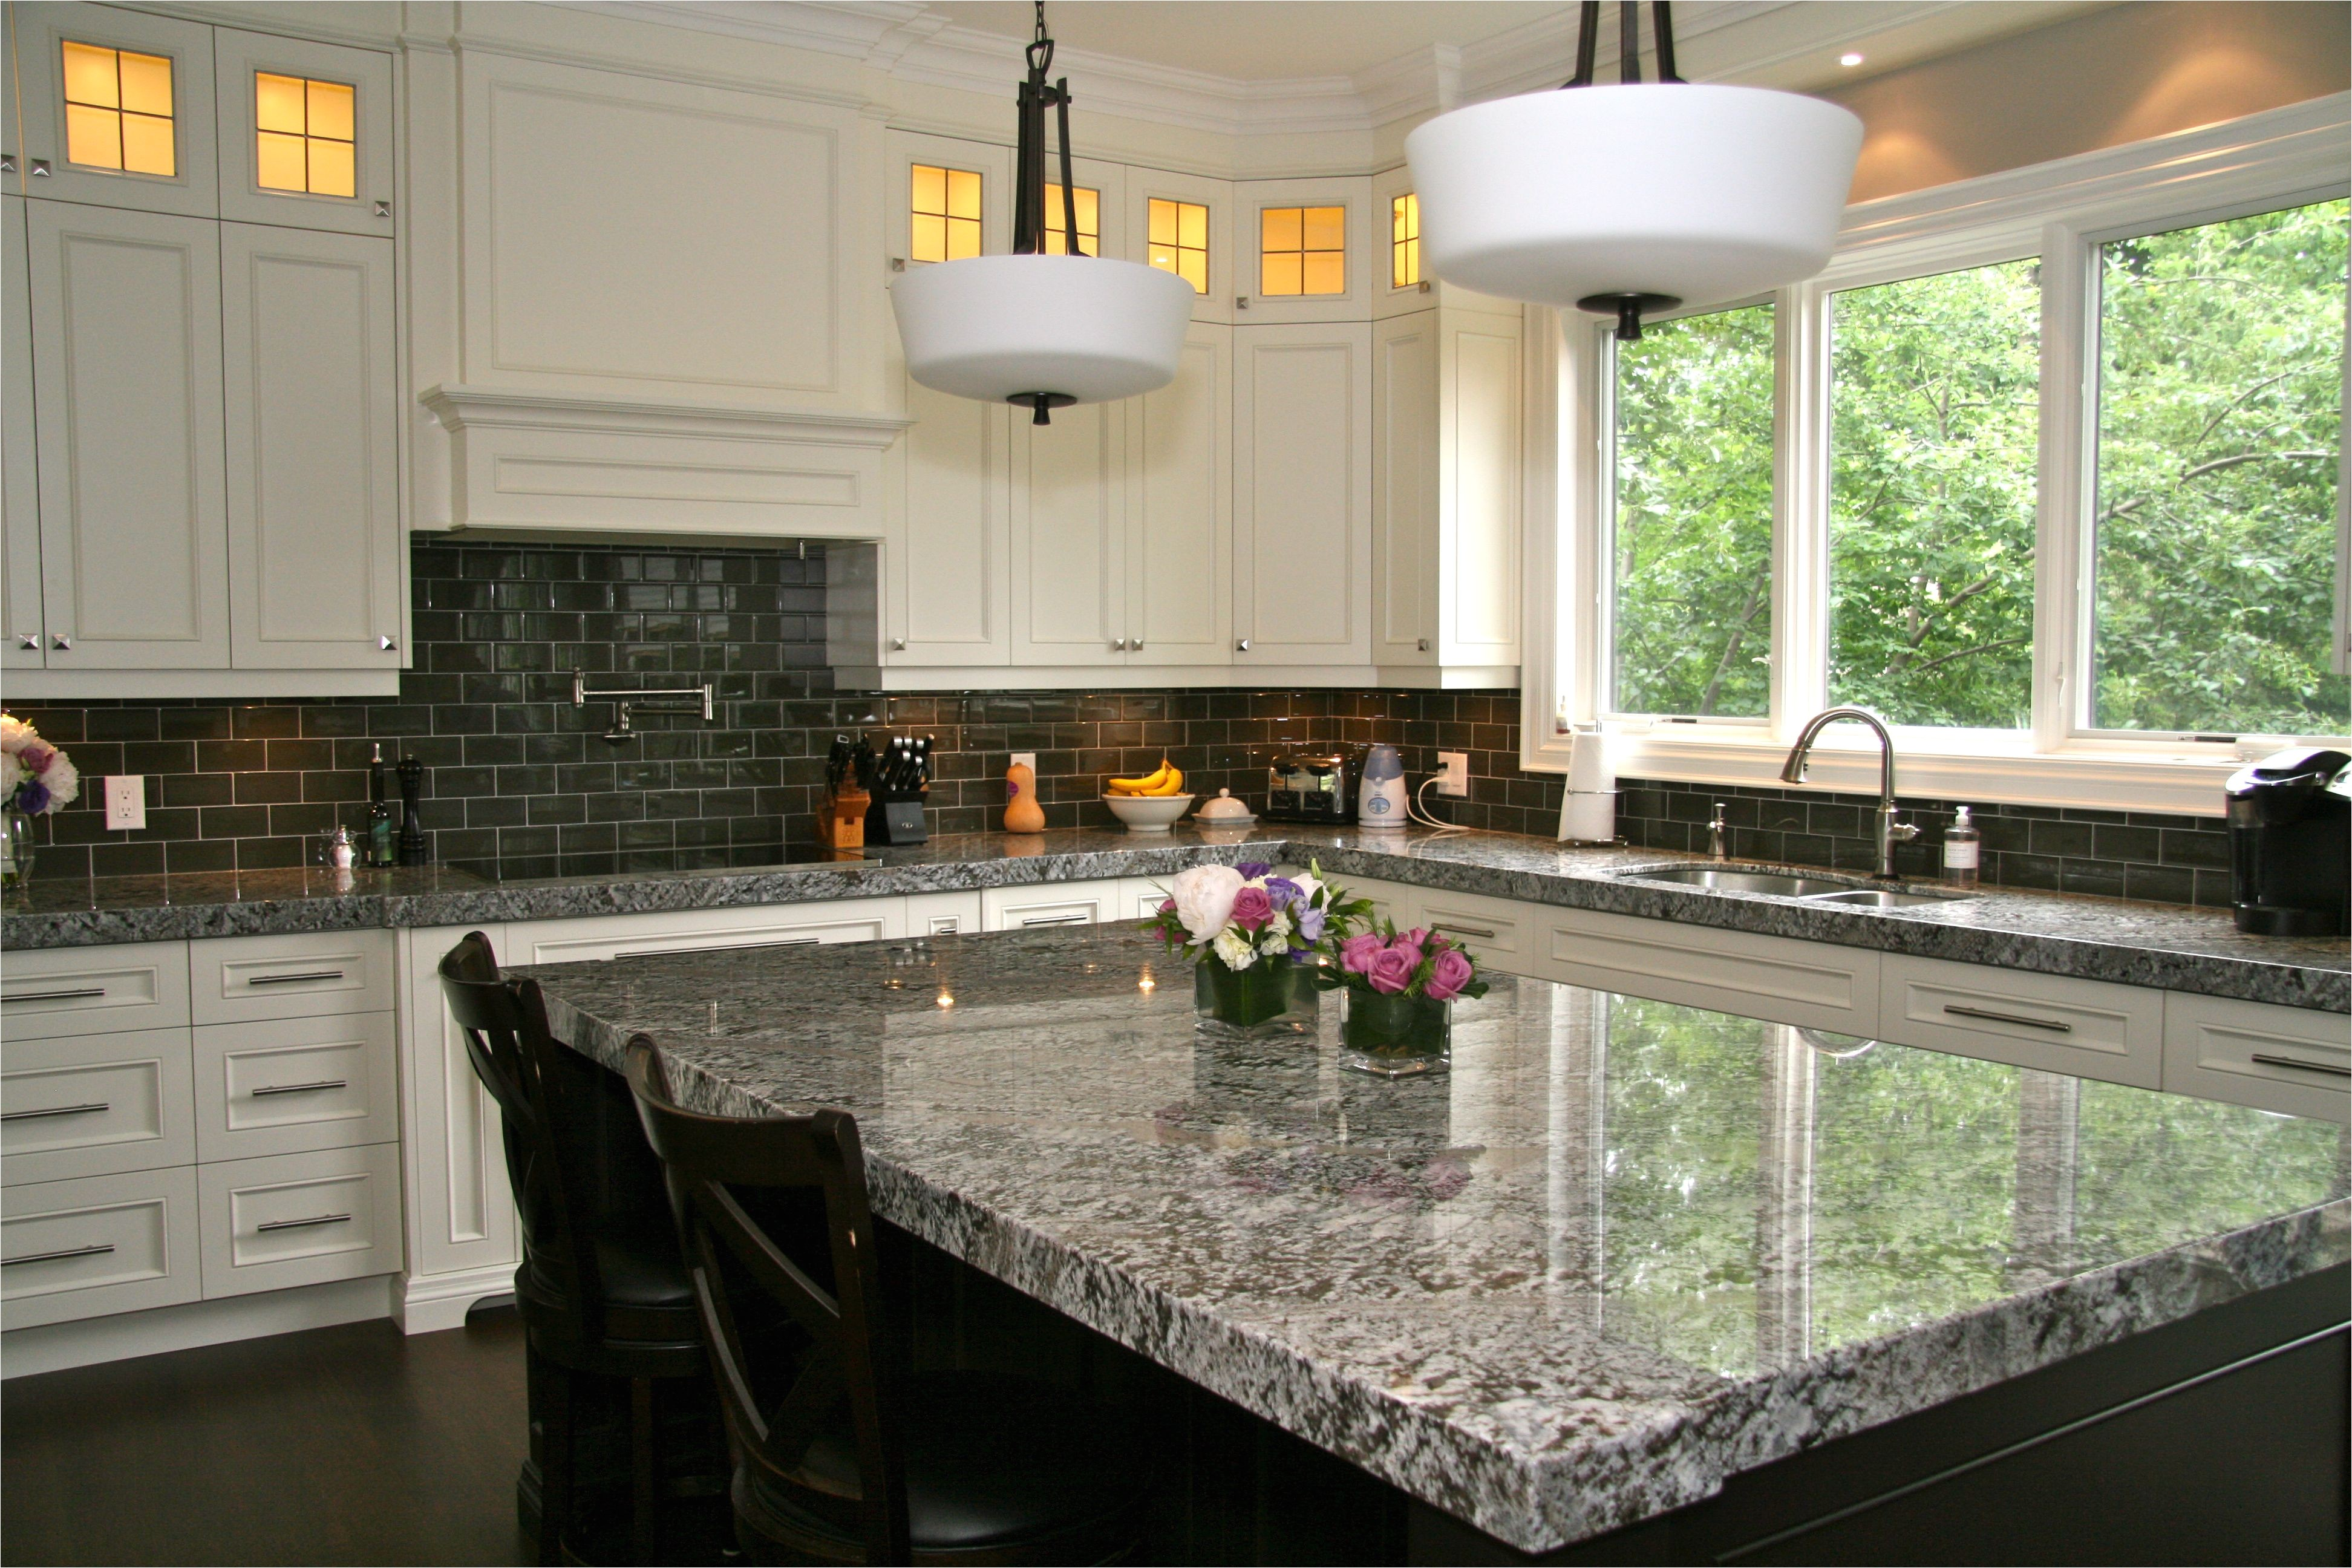 lennon granite completed with gray subway tiles and cupboard back lighting www marbleandmarble com lennon granite kitchen subway tiles